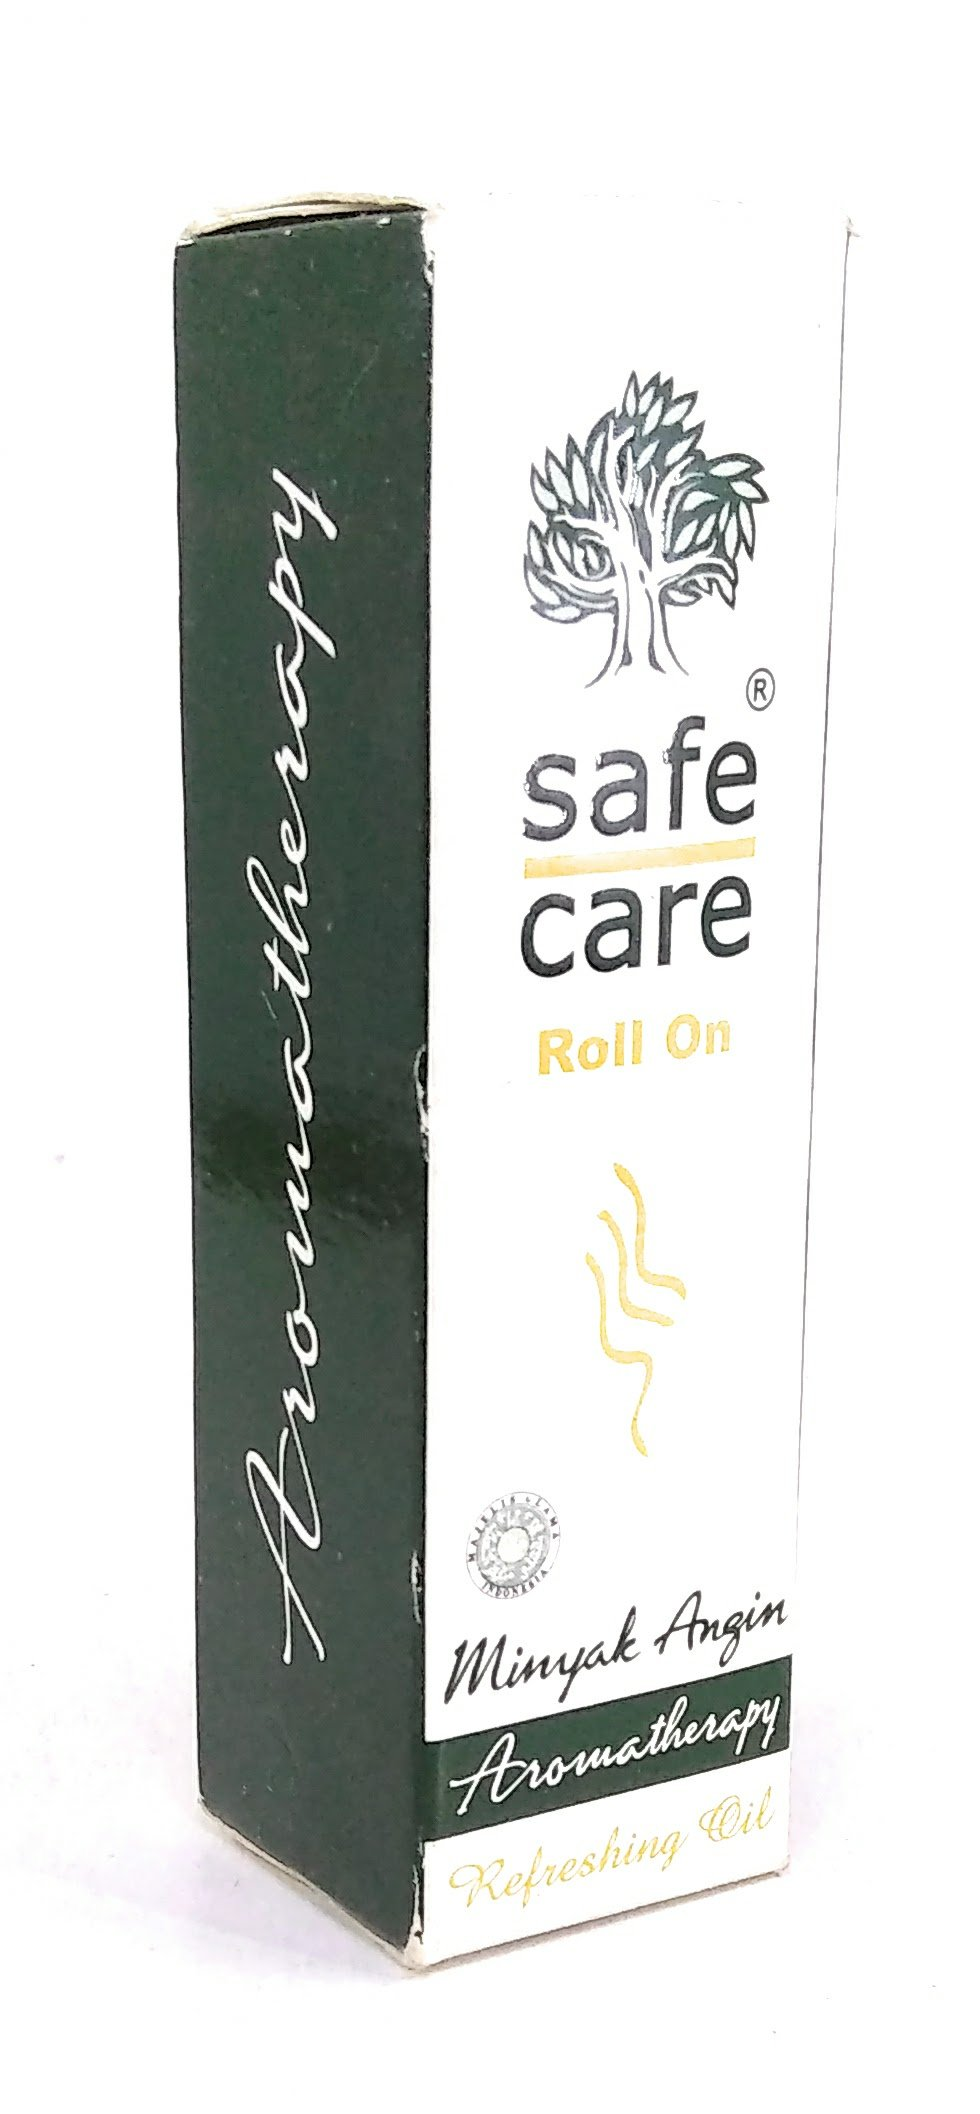 Safe Care Roll on Refreshing Oil Aromatherapy, 10 Ml (Pack of 3)